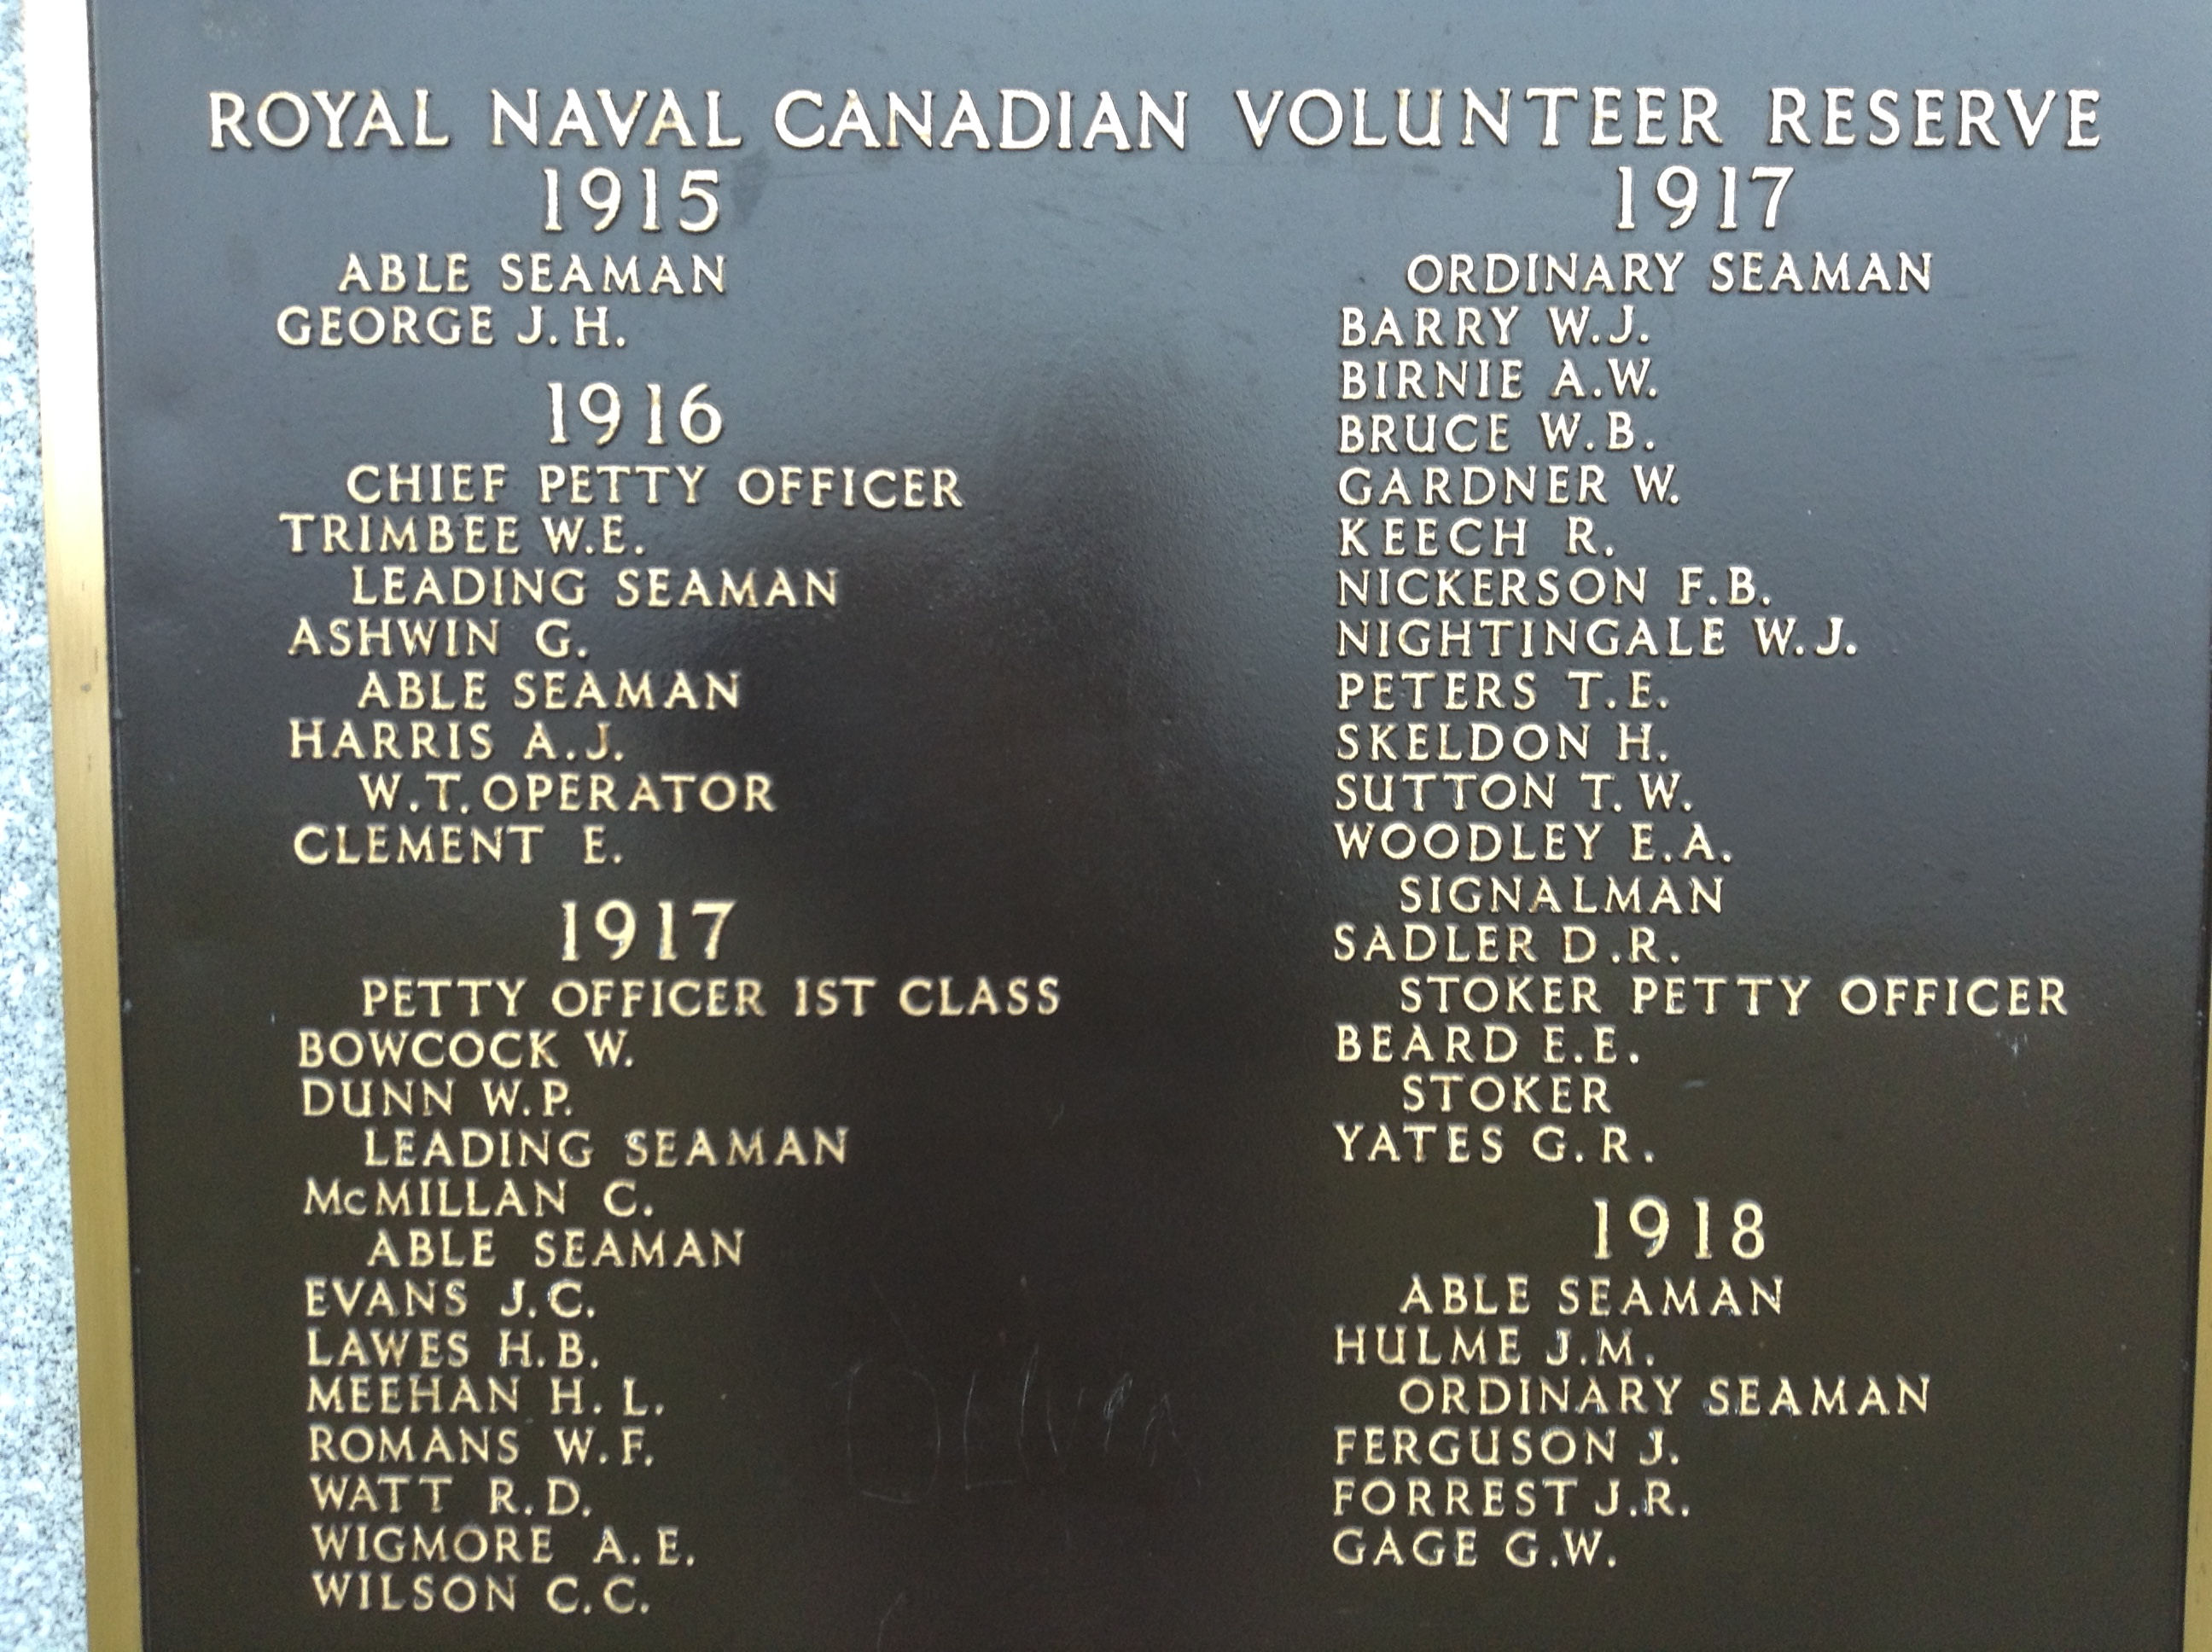 Photo– The panel on the Halifax Memorial, at Point Pleasant in Halifax, Nova Scotia, Canada, on which William Franklyn Romans's name is inscribed. Image taken 25 November 2017 by Tom Tulloch.